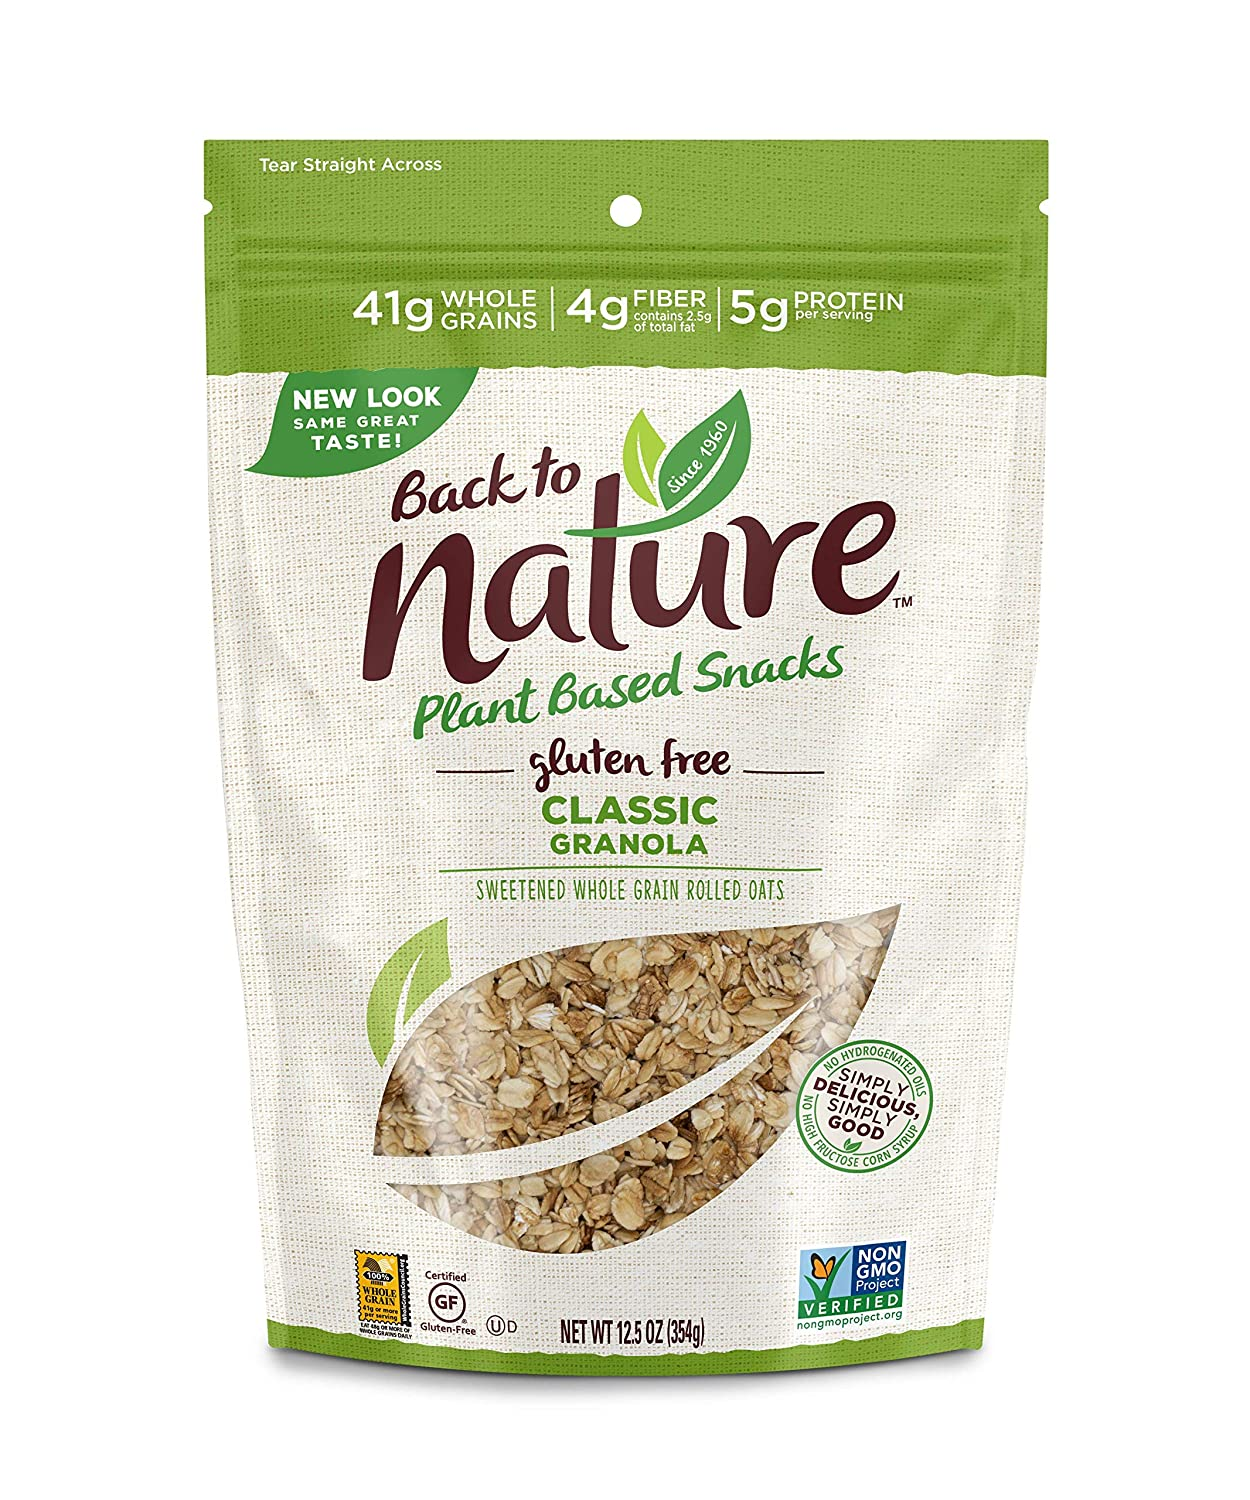 Back to Nature Gluten Free Granola, Non-GMO Classic, 12.5 Ounce (Pack of 6) (Packaging May Vary)